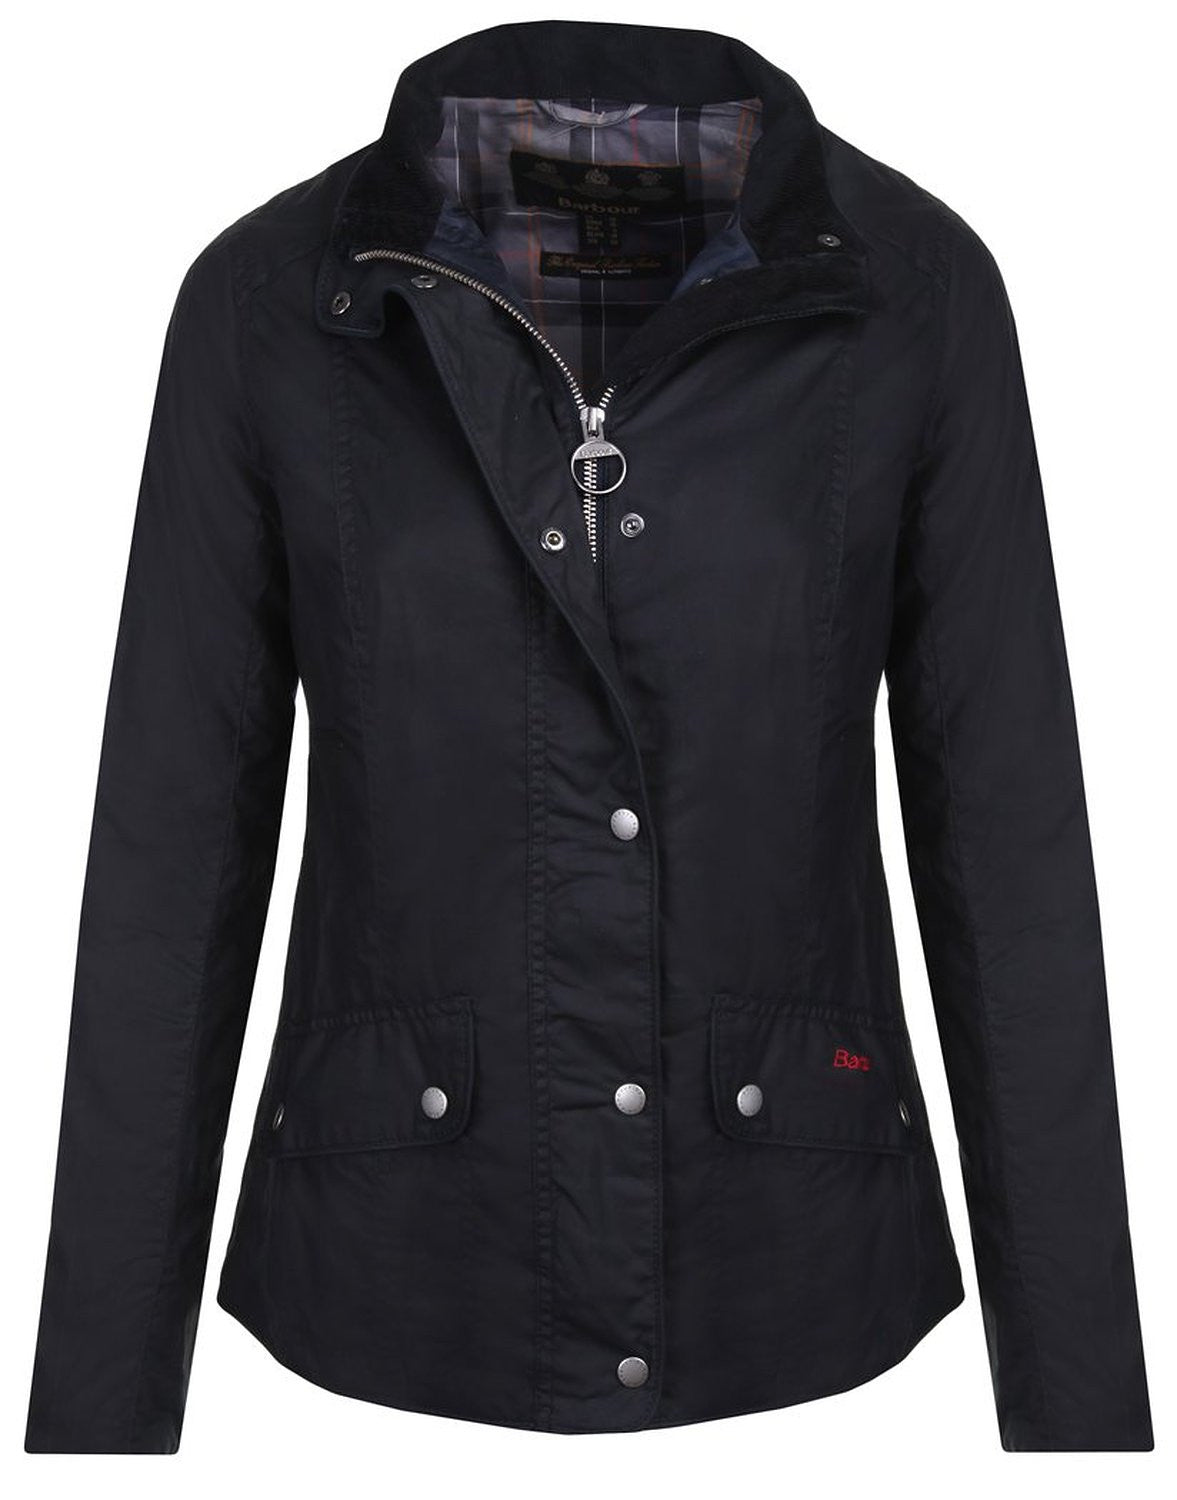 Barbour Ferndown Waxed Jacket - SALE - North Shore Saddlery